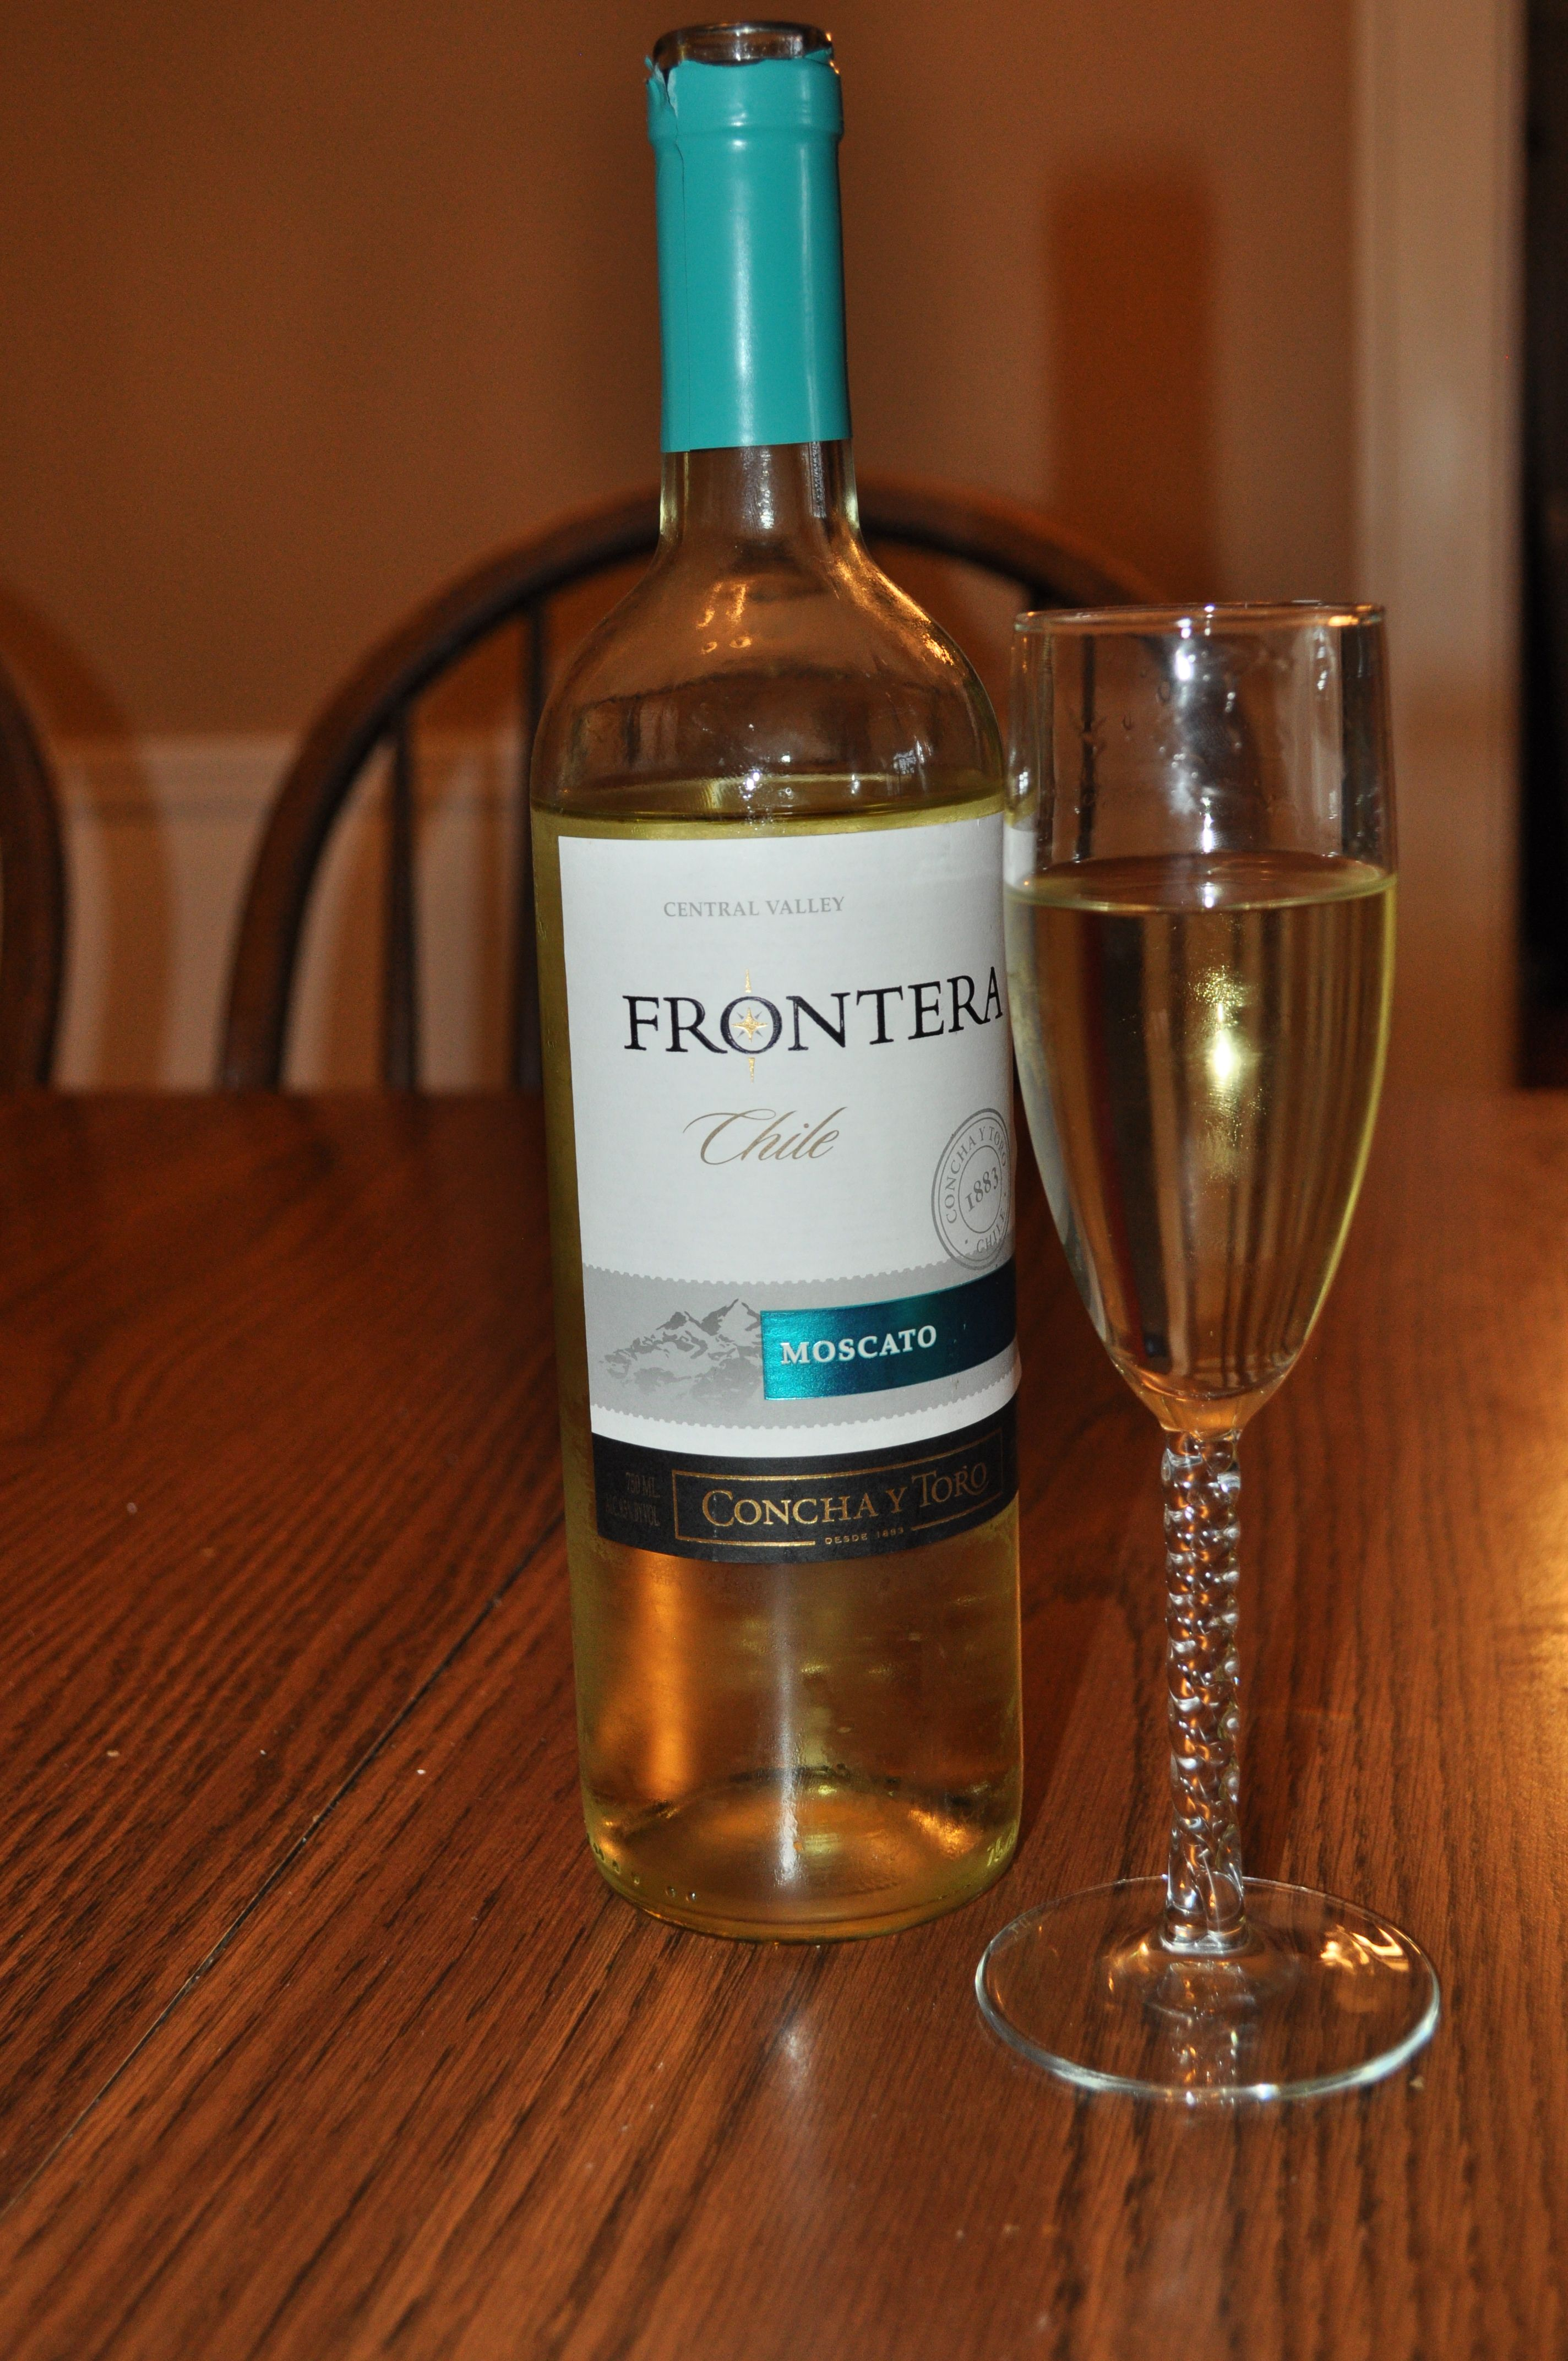 MMM Moscato wine- Frontera brand only $5 at Kroger! I got to try it ...